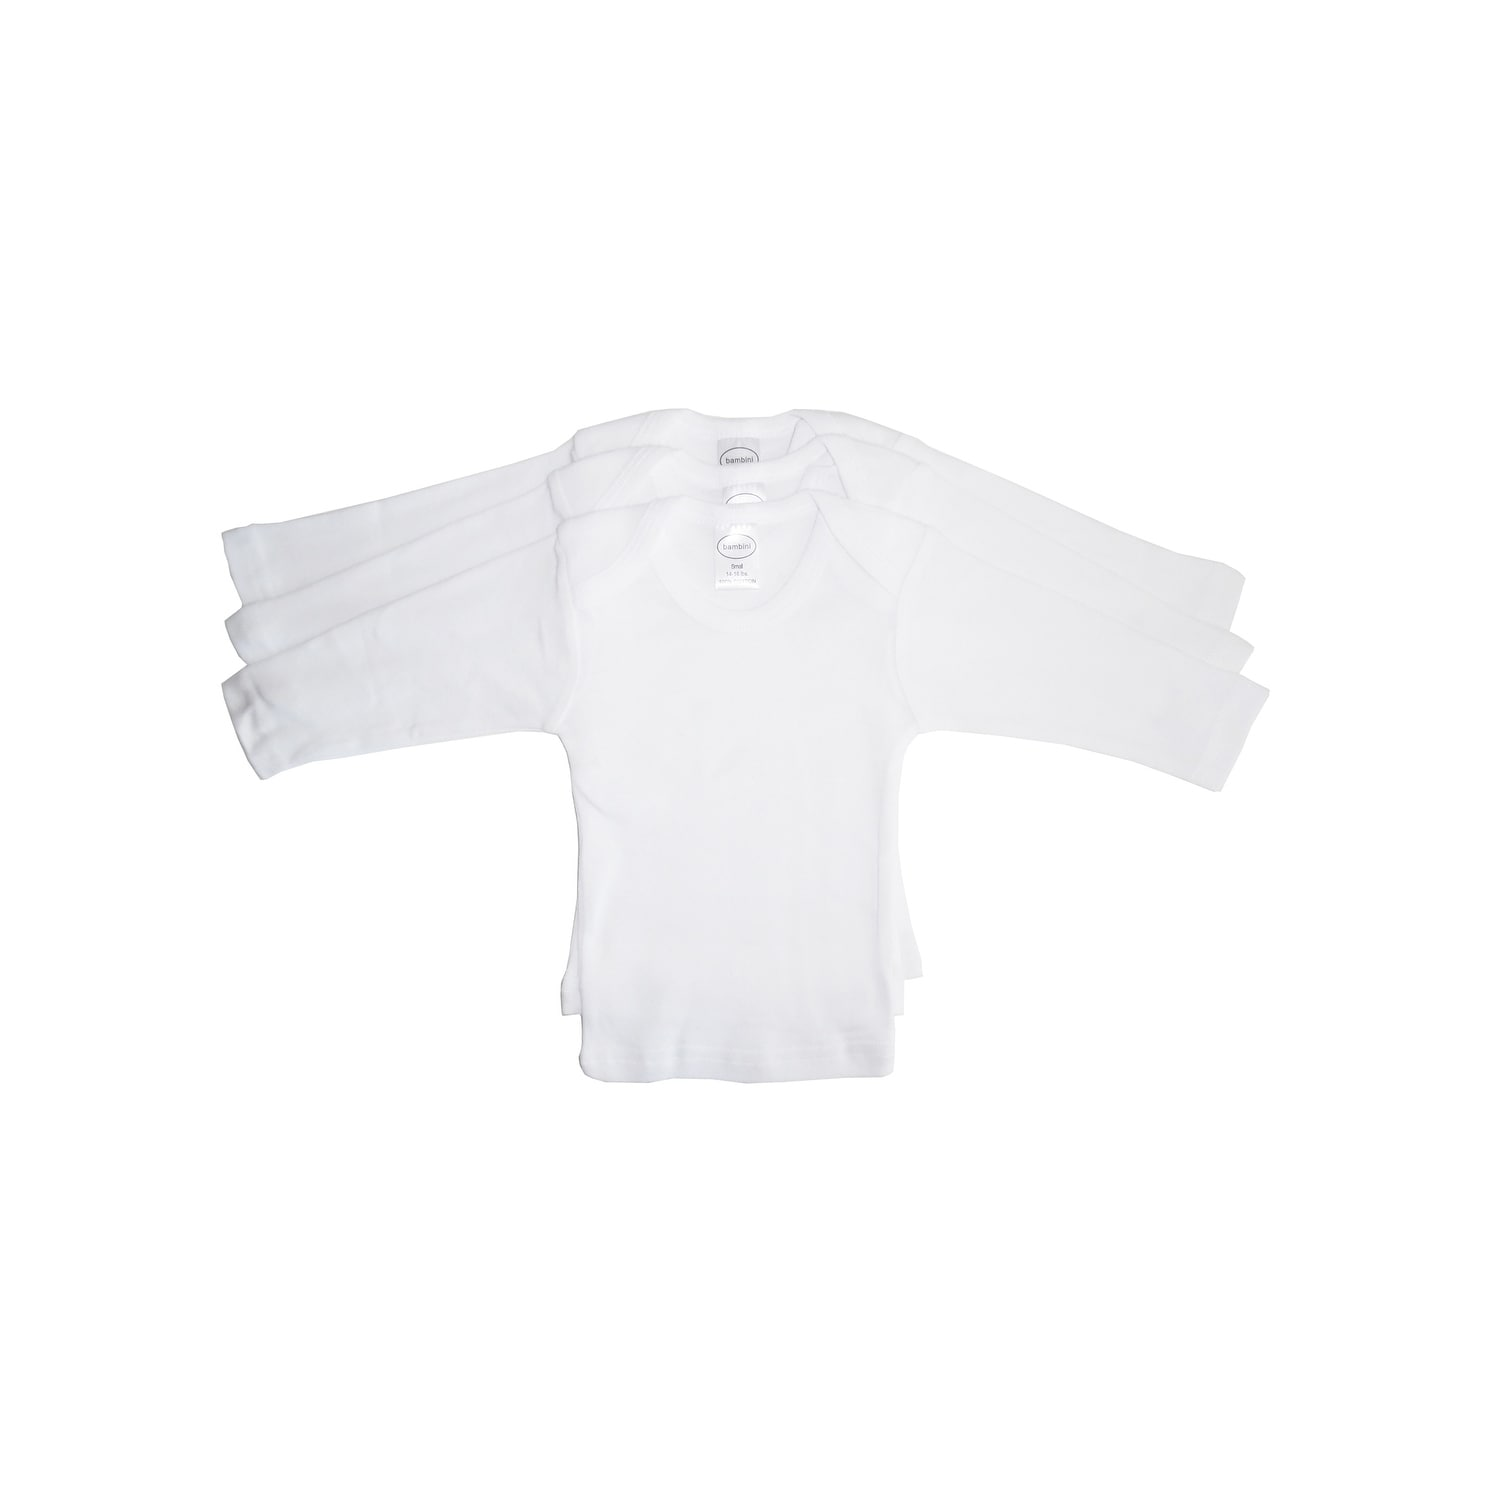 Bambini Baby Long Sleeve White Lap T-shirt